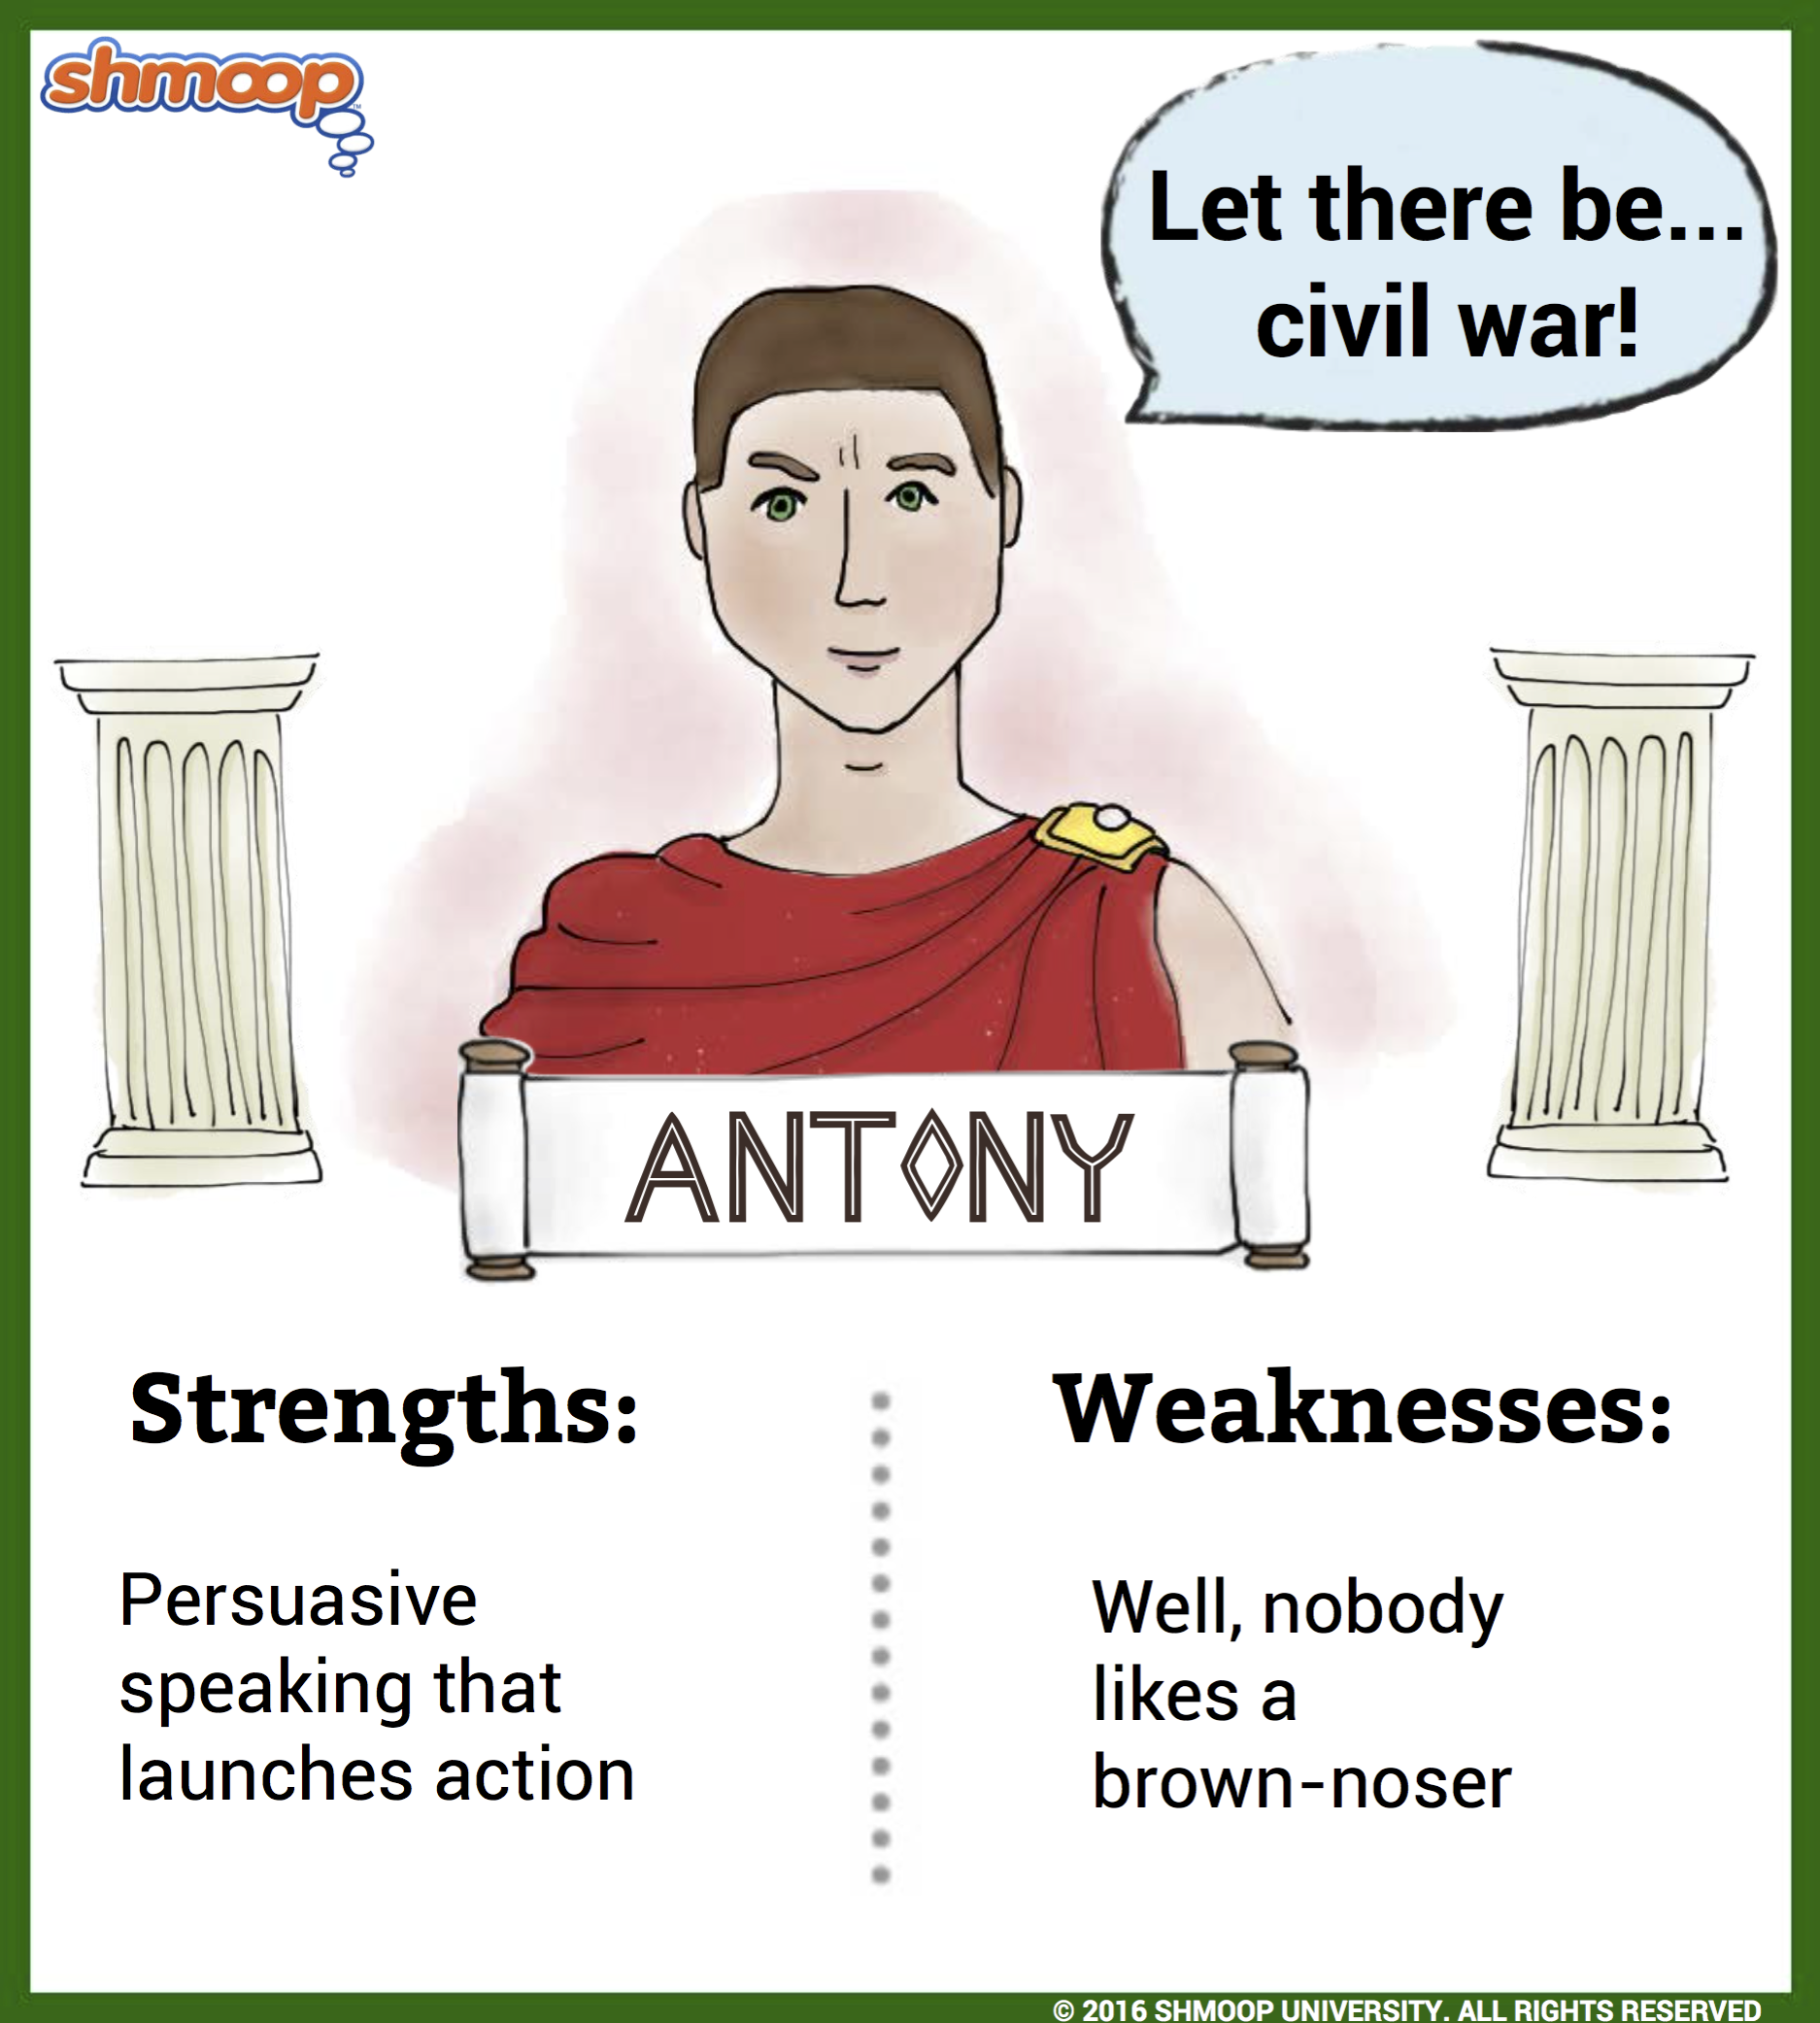 an analysis of act scene 3 in the play antony and cleopatra by william shakespeare You can buy the arden text of this play from the amazoncom online bookstore: antony and cleopatra (arden shakespeare: mark antony's camp act 3, scene 8: a plain.